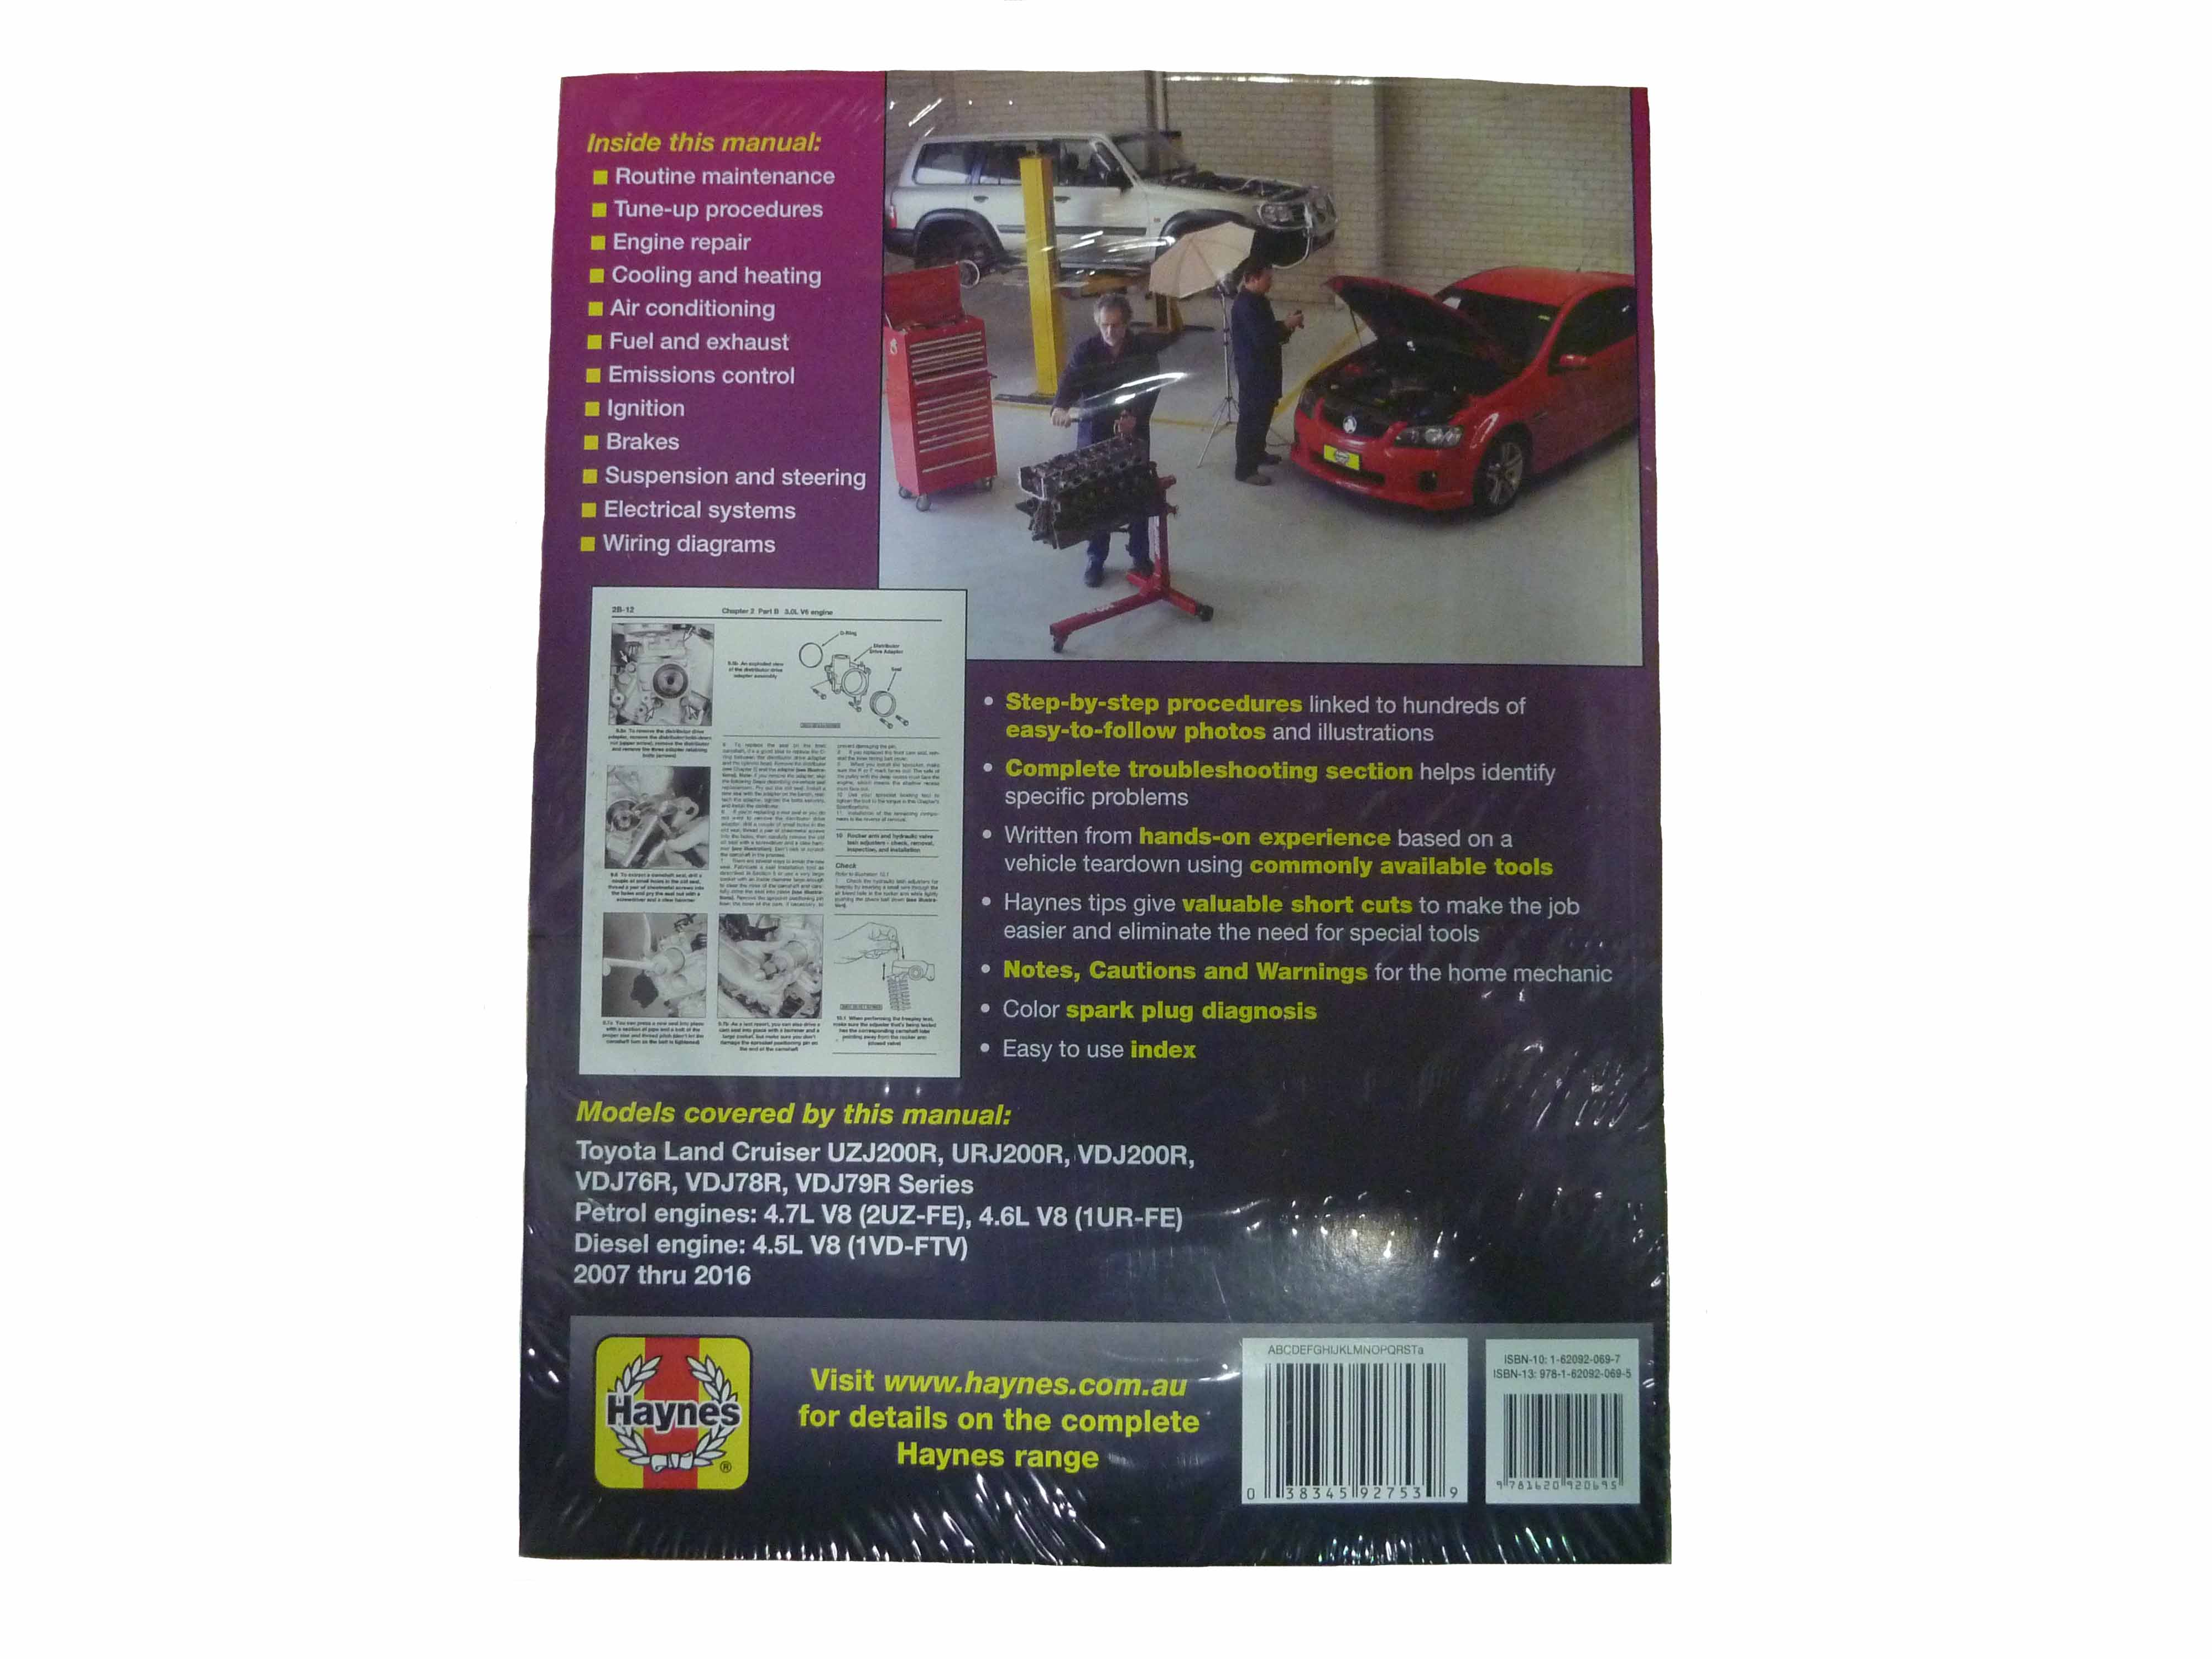 haynes workshop manual suitable for landcruiser vdj uzj urj 76 78 79 rh ebay com au 3D View Landcruiser 76 76 Land Cruiser in Deep Snow